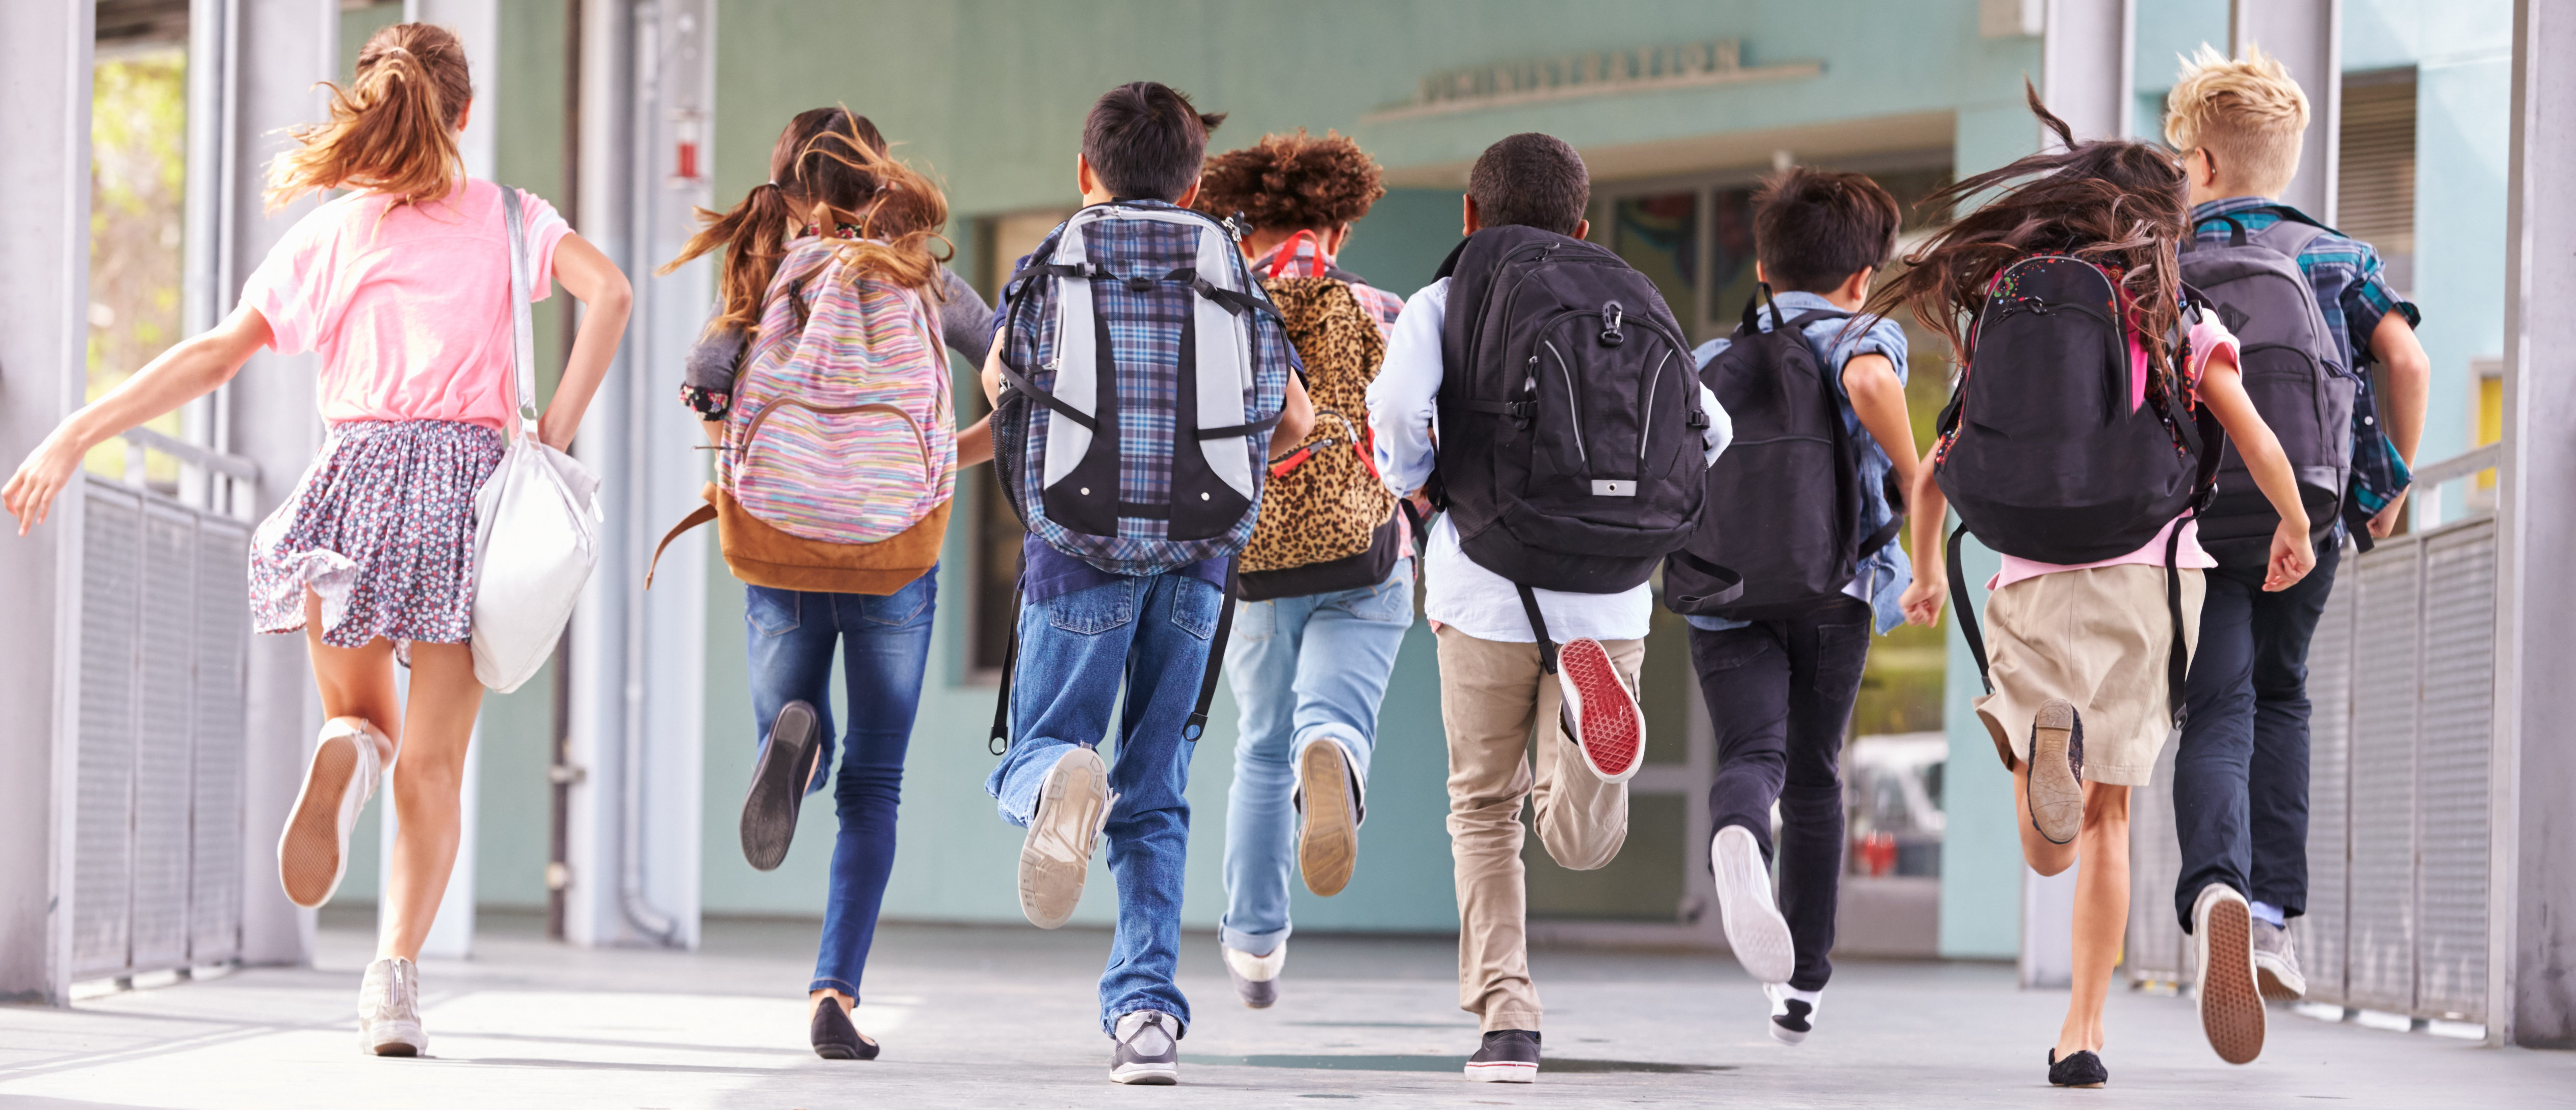 Group of elementary school kids running at school (Shutterstock/ Monkey Business Images)